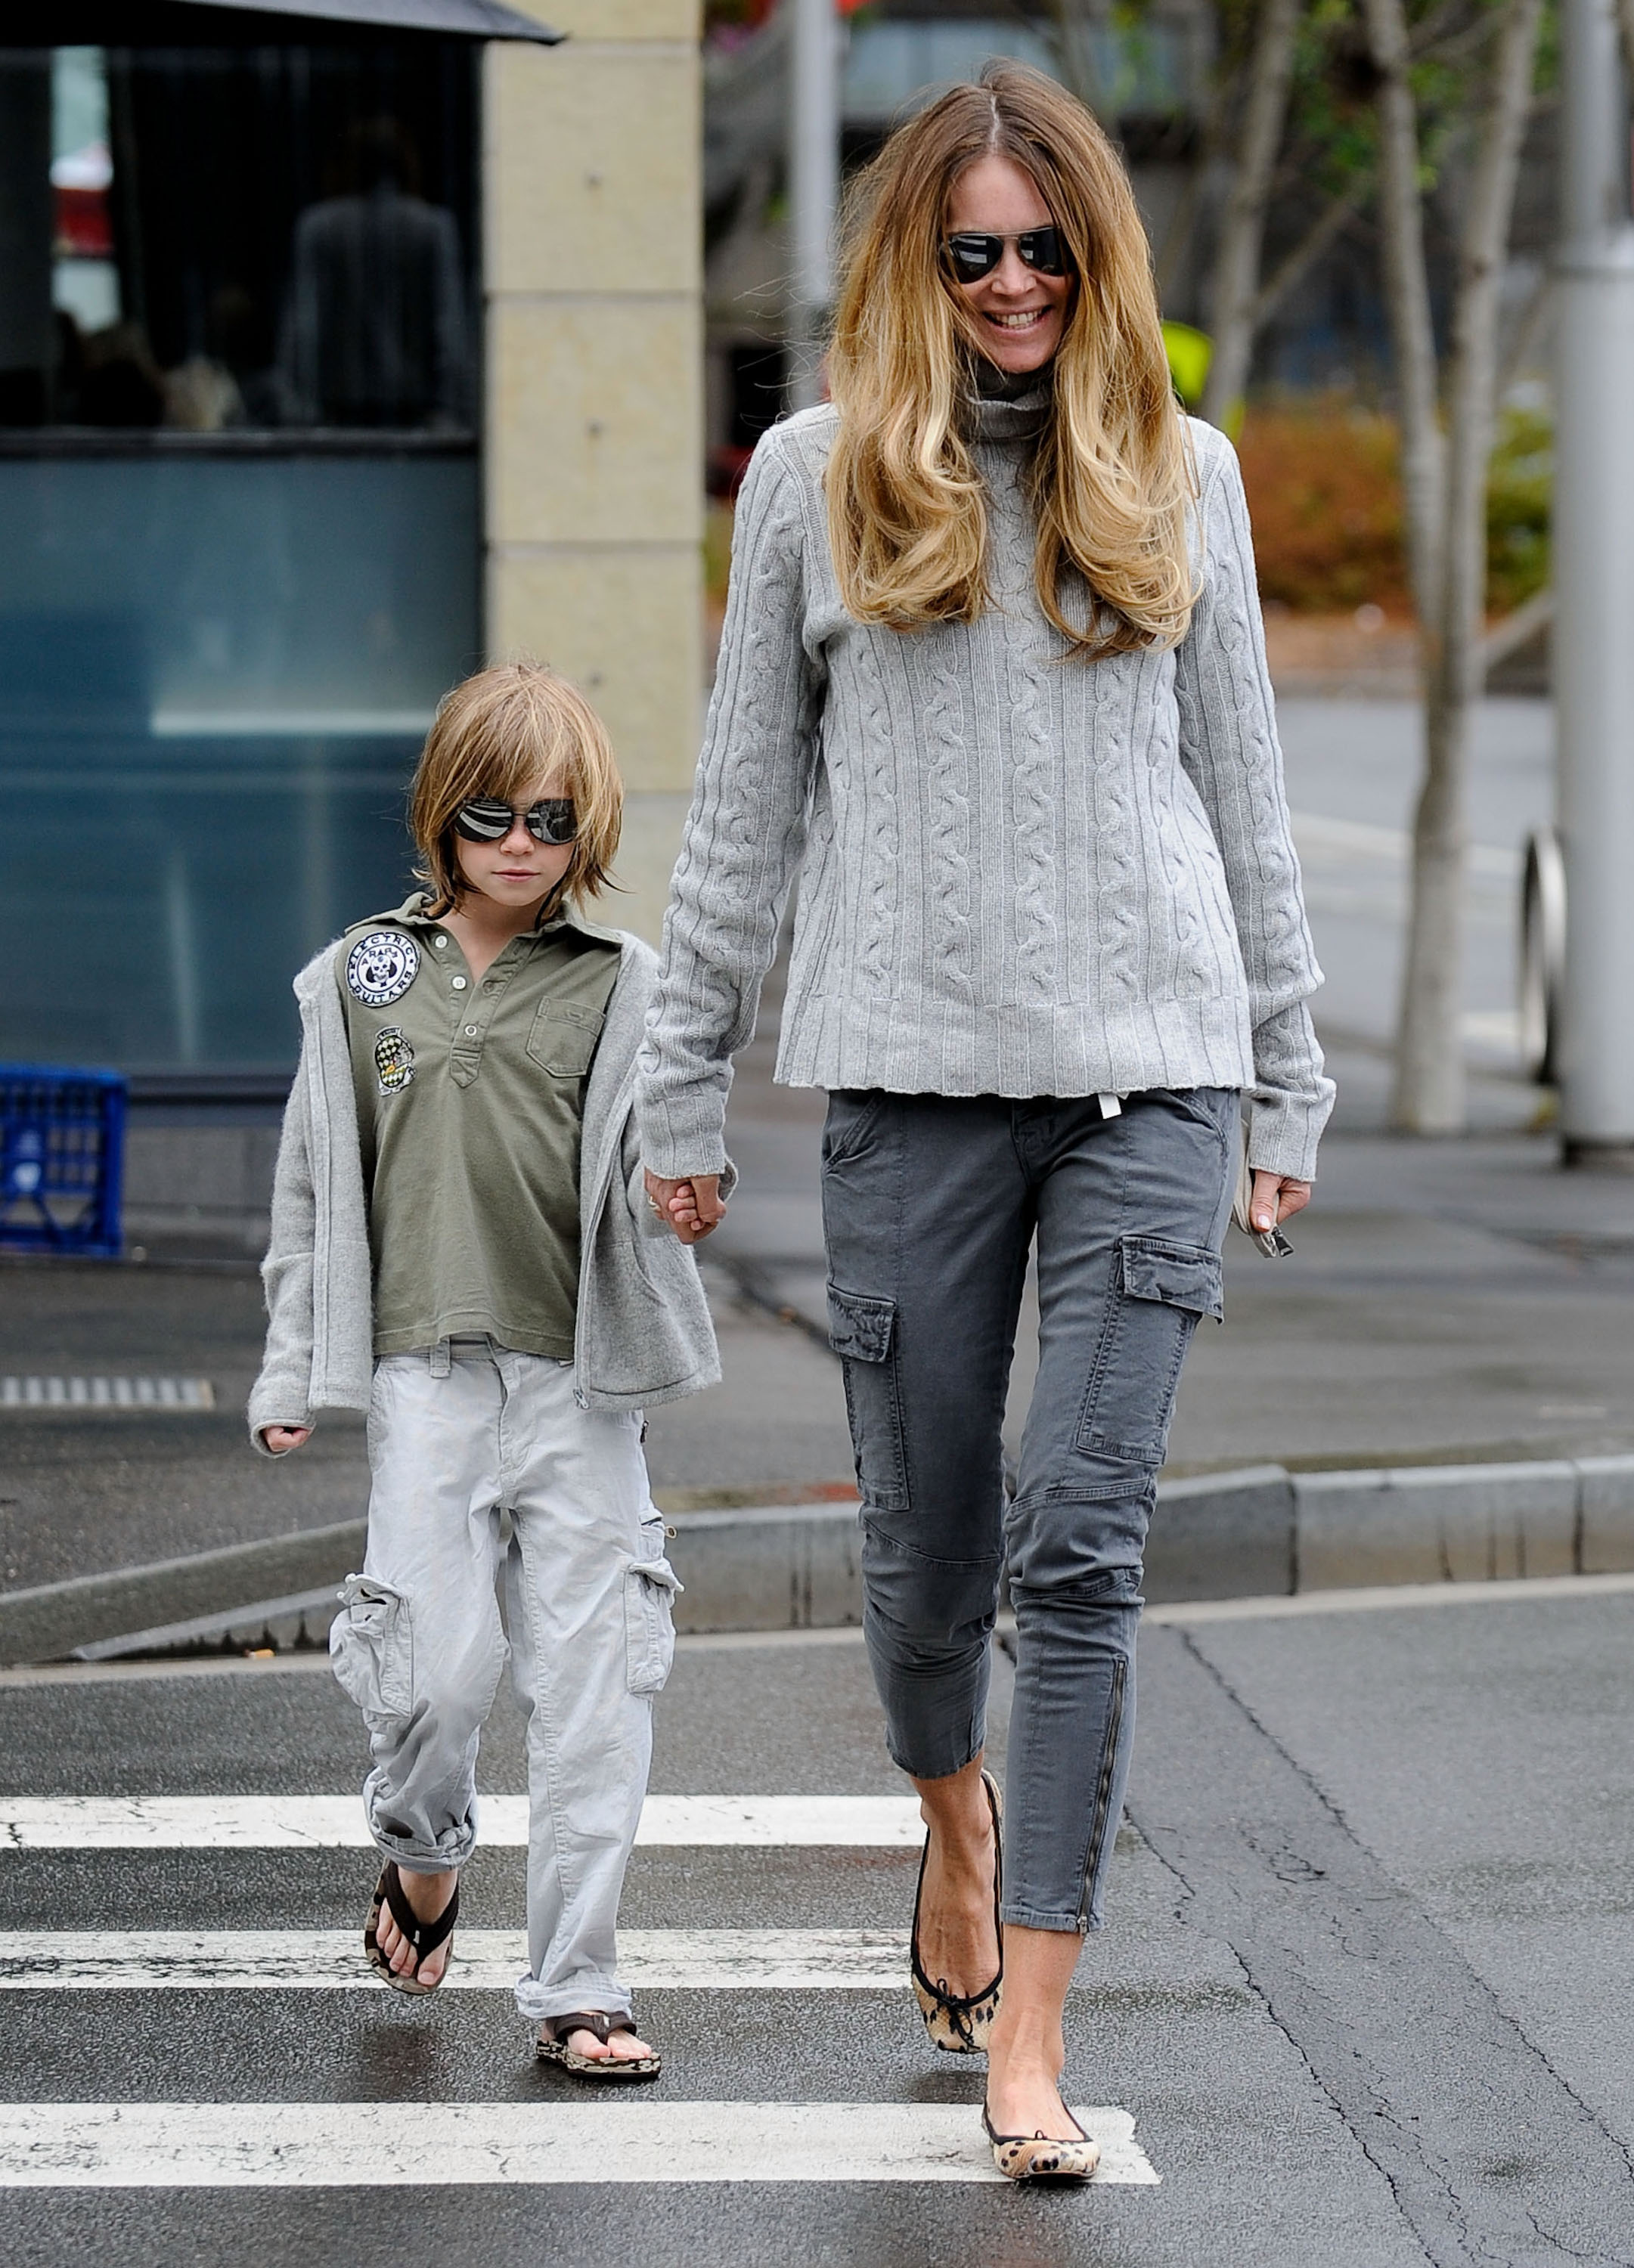 Elle Macpherson With Son Flynn Ode To Mother 39 S Day Check Out These Model And Designer Moms